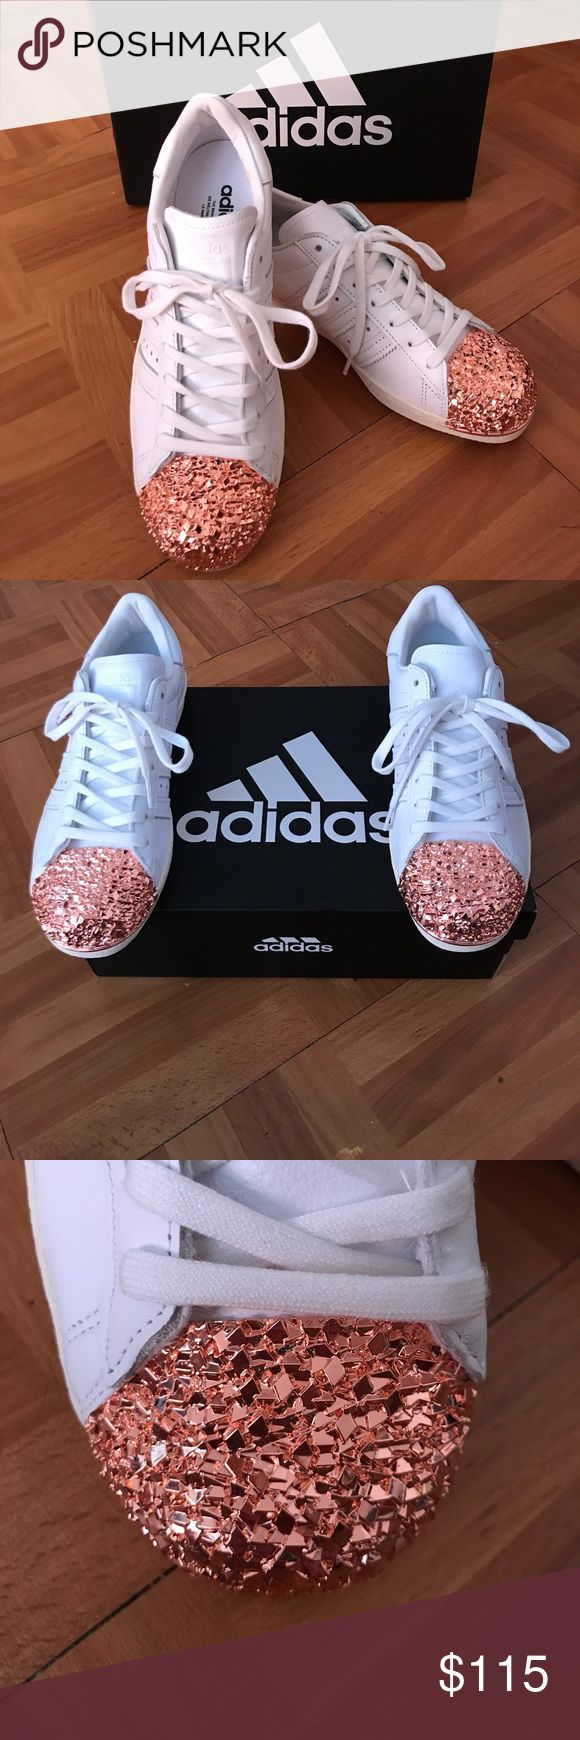 Adidas Superstar 80S 3D Rose Gold Metal Toe Adidas Superstar 80S 3D rose gold/bronze metal toe style number #bb2034. Brand new, no tags, comes with a box (not original box), shoes are stuffed with tissue paper to hold shape. No trades, willing to take offers! adidas Shoes Sneakers